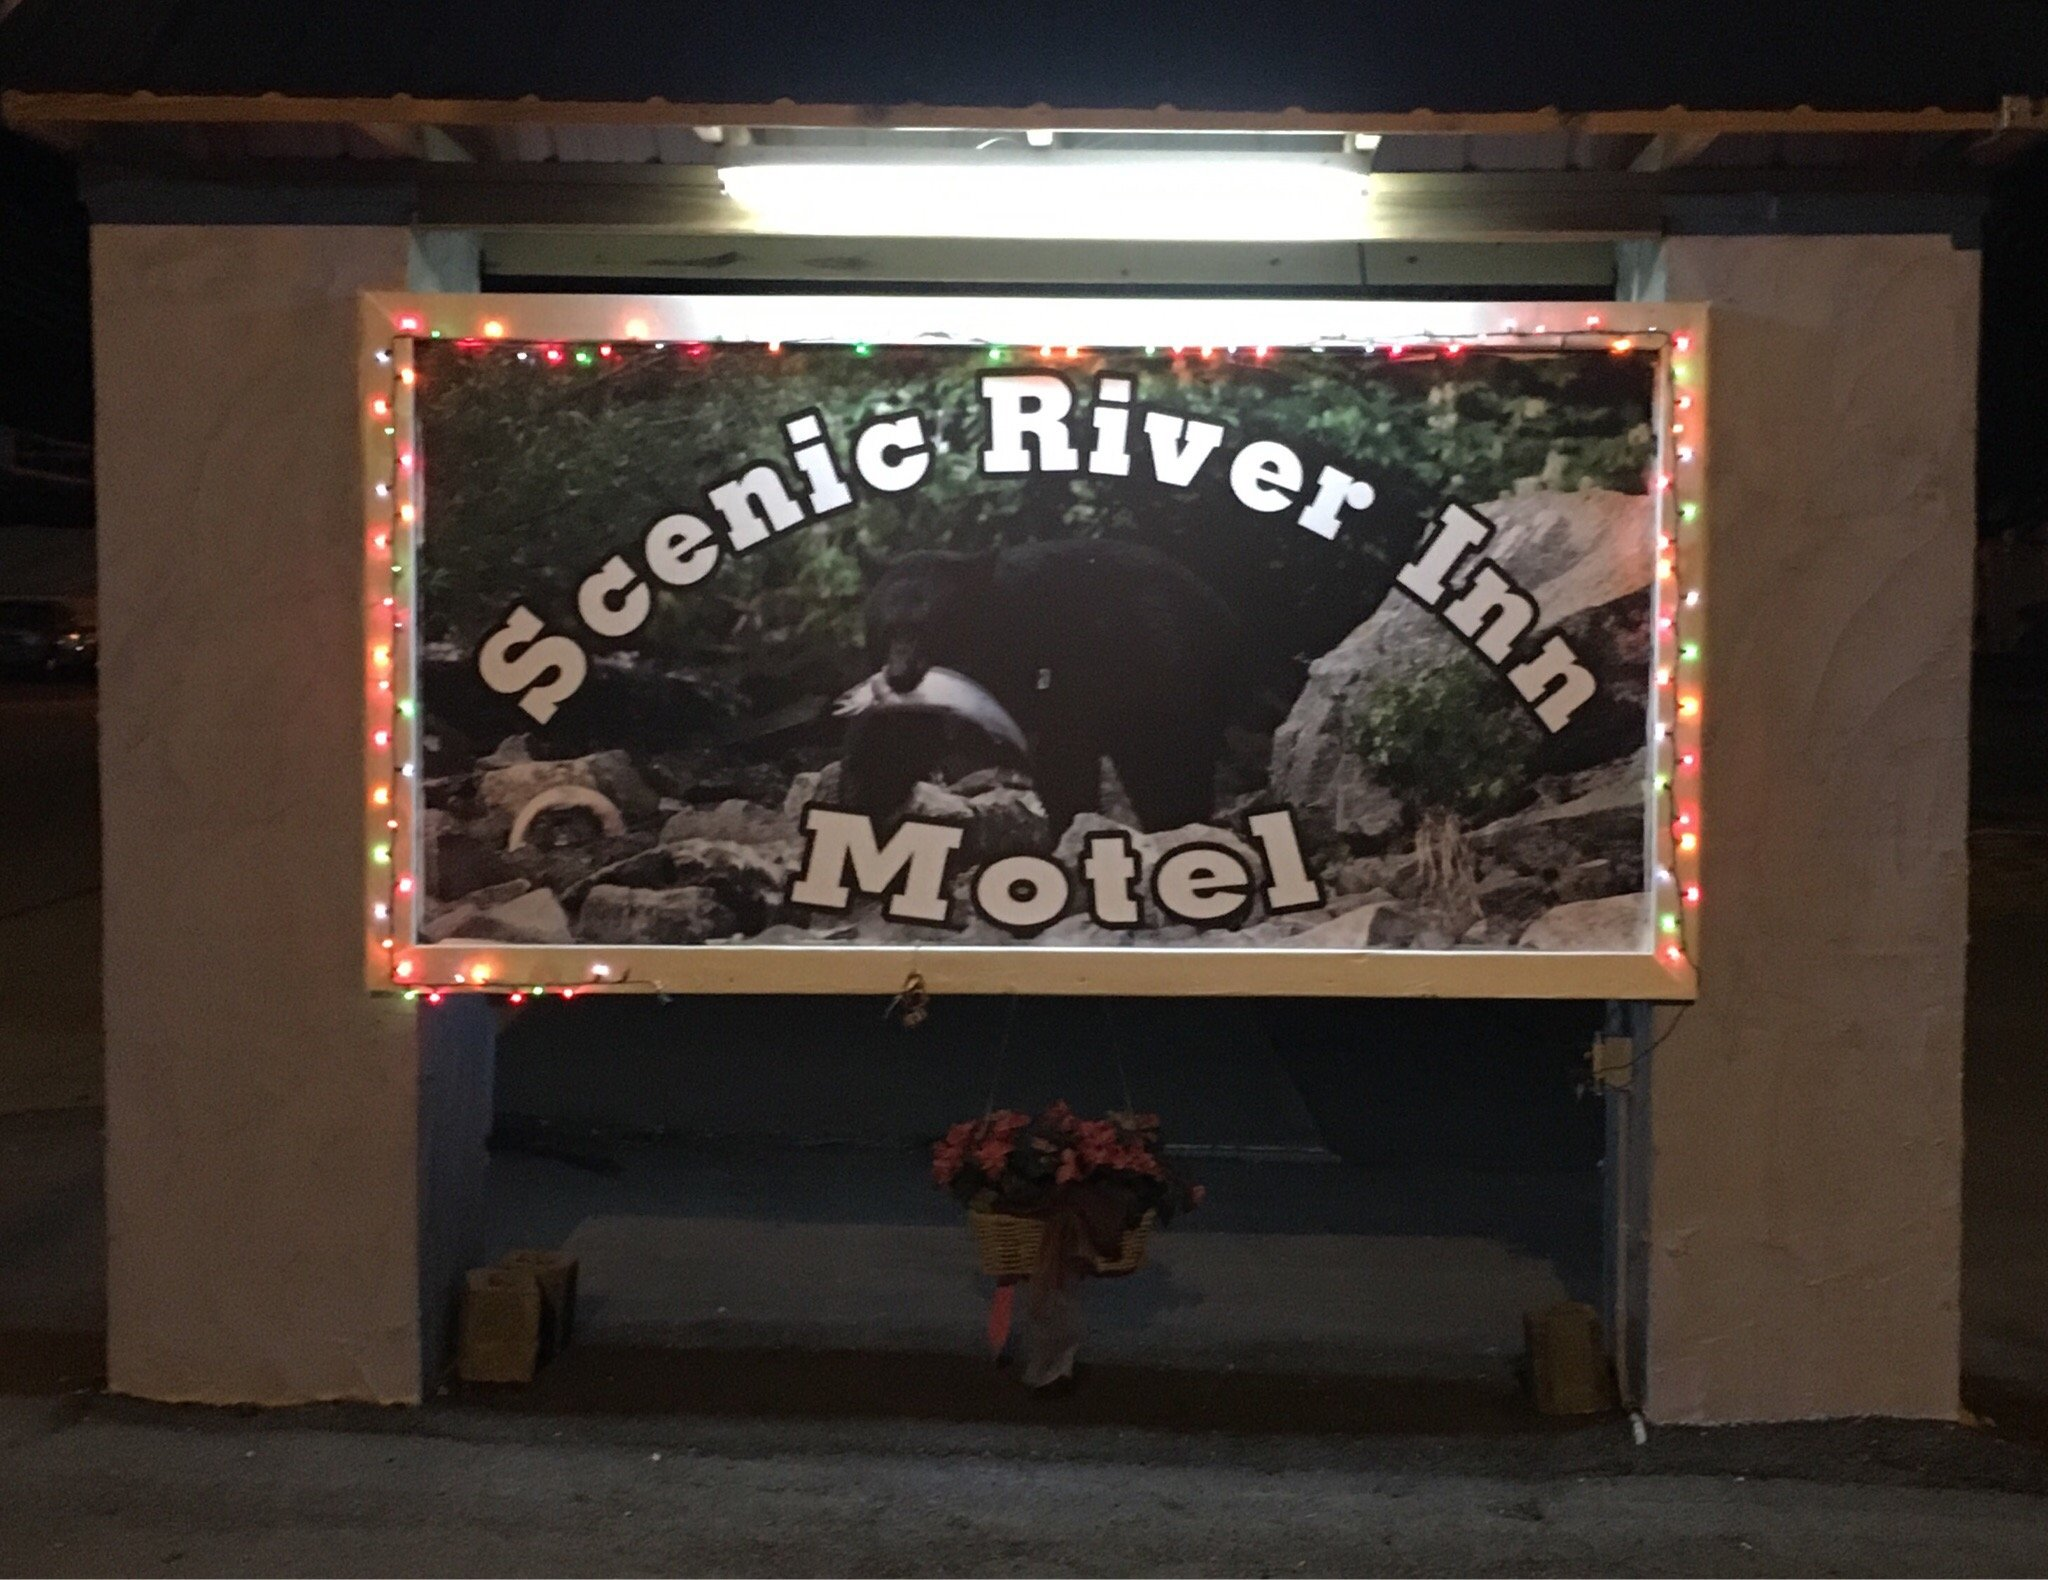 Scenic River Inn Motel